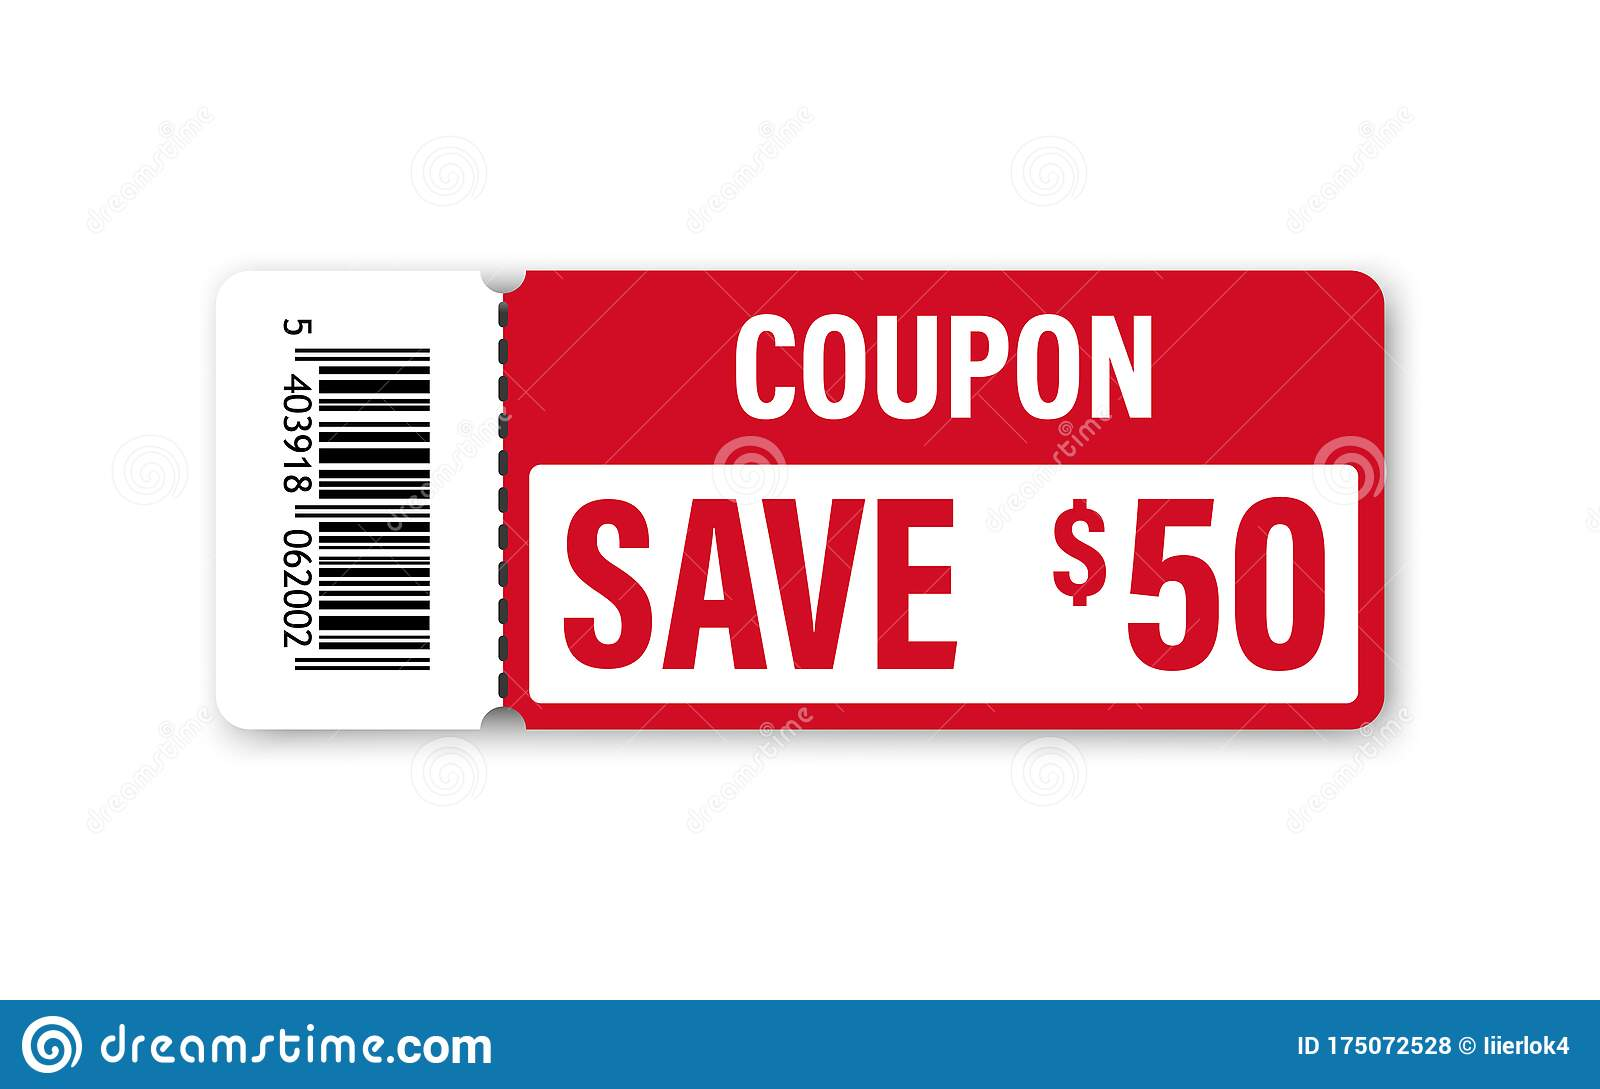 Set Of Template Coupon Gift Coupon Element Template Graphics Design Voucher Promo Code Shopping Marketing Food And Drink Stock Vector Illustration Of Banner Flat 175072528